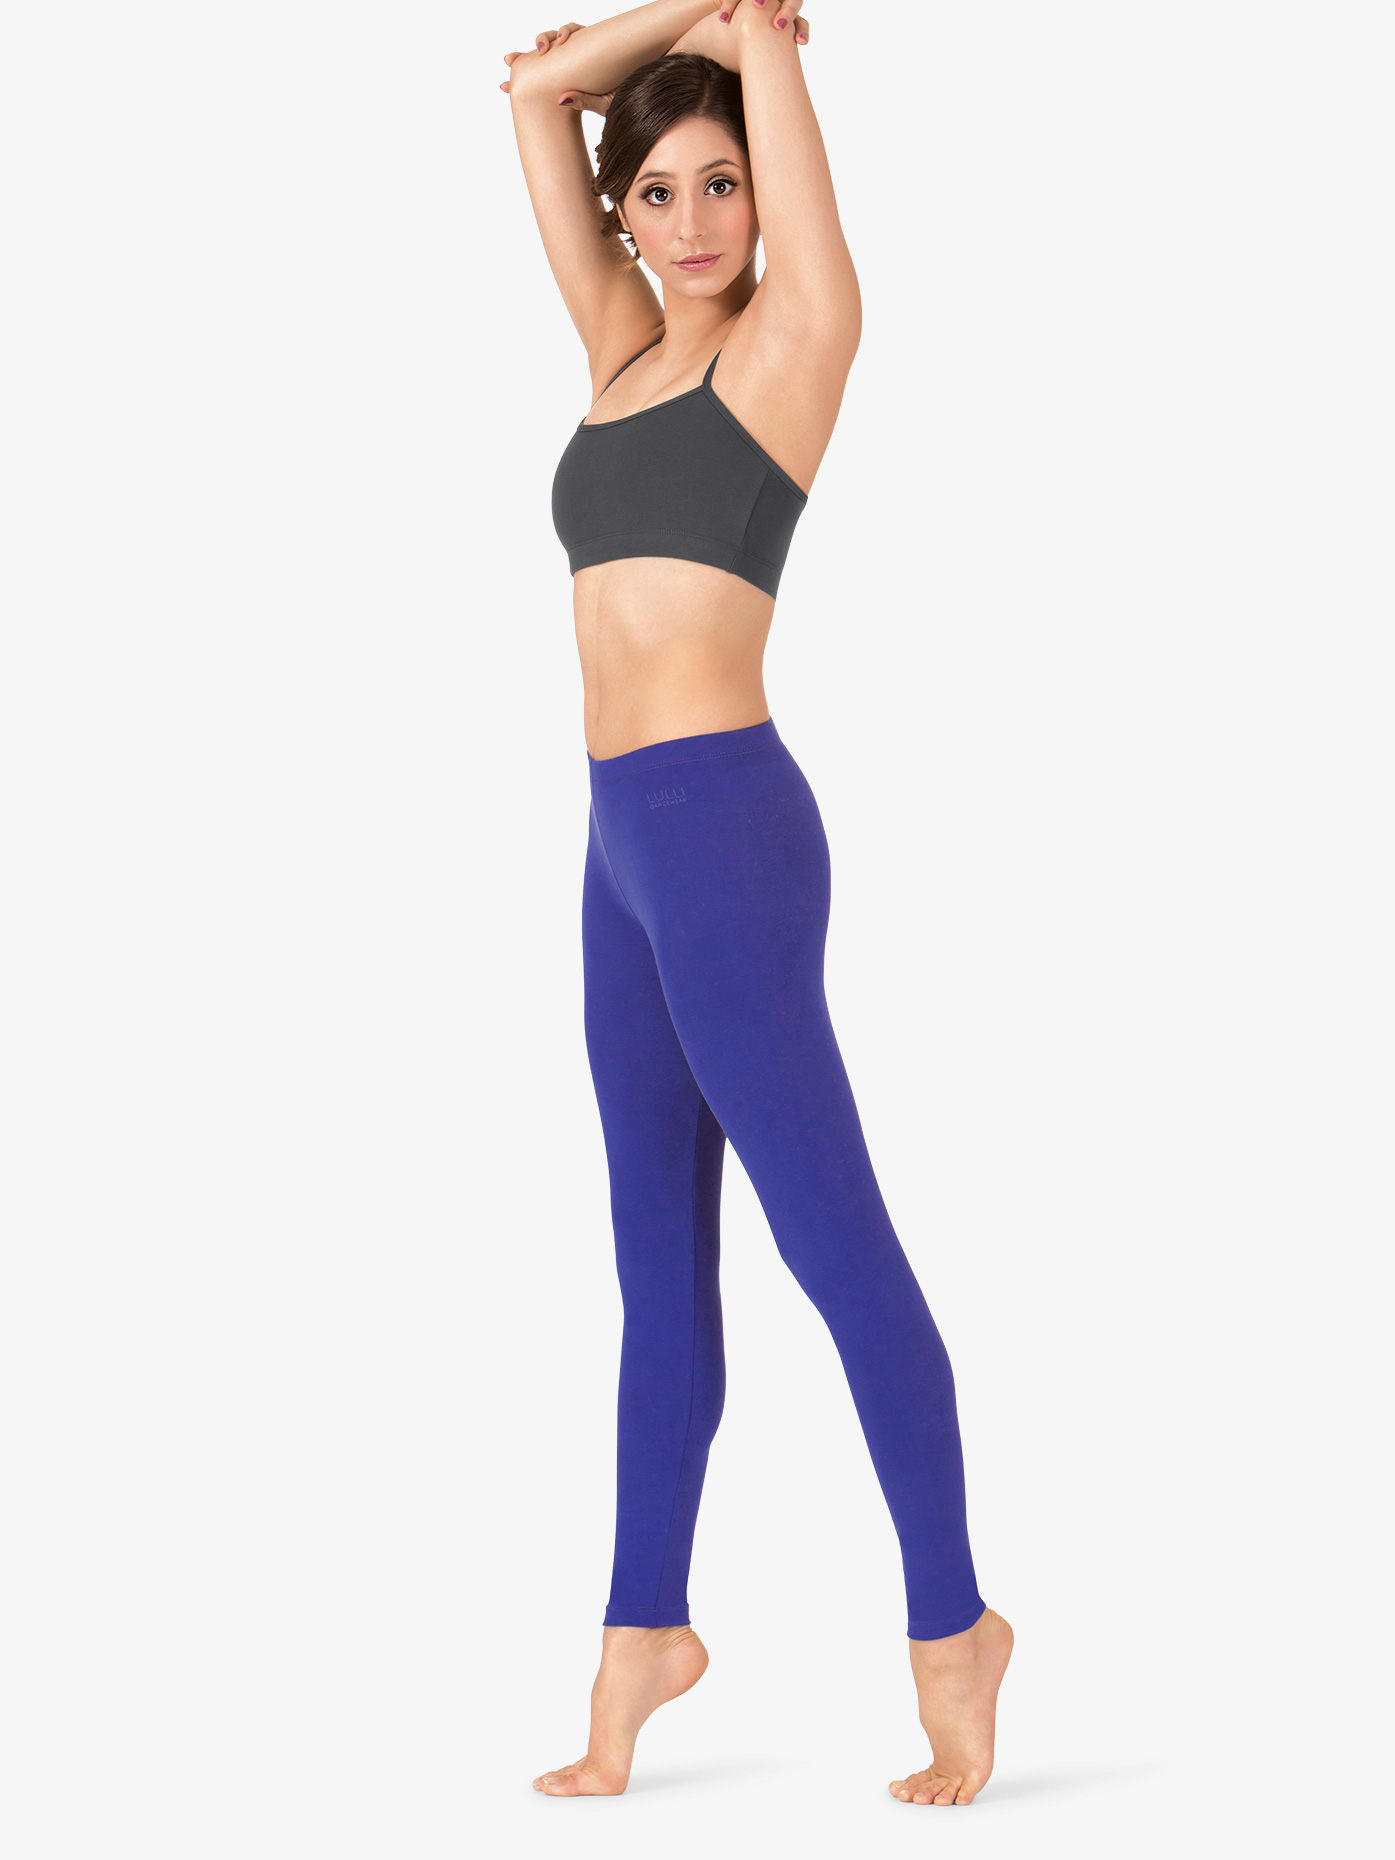 Lulli Adult Brushed Cotton Ankle Dance Leggings LUB233